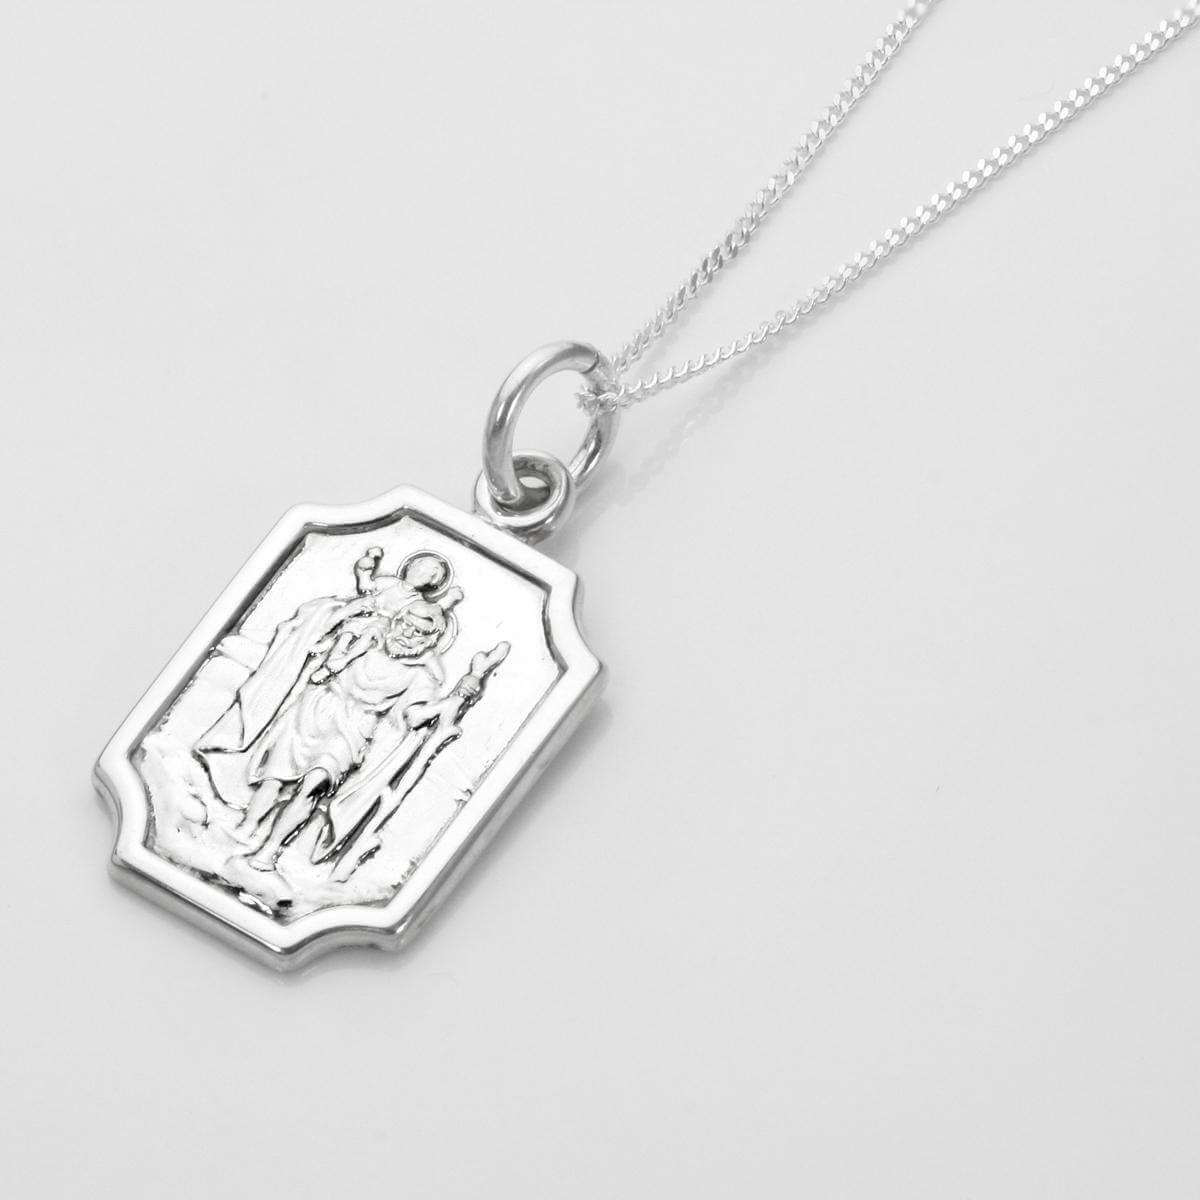 Sterling Silver Small Saint Christopher Plaque Pendant - 16 - 22 Inches